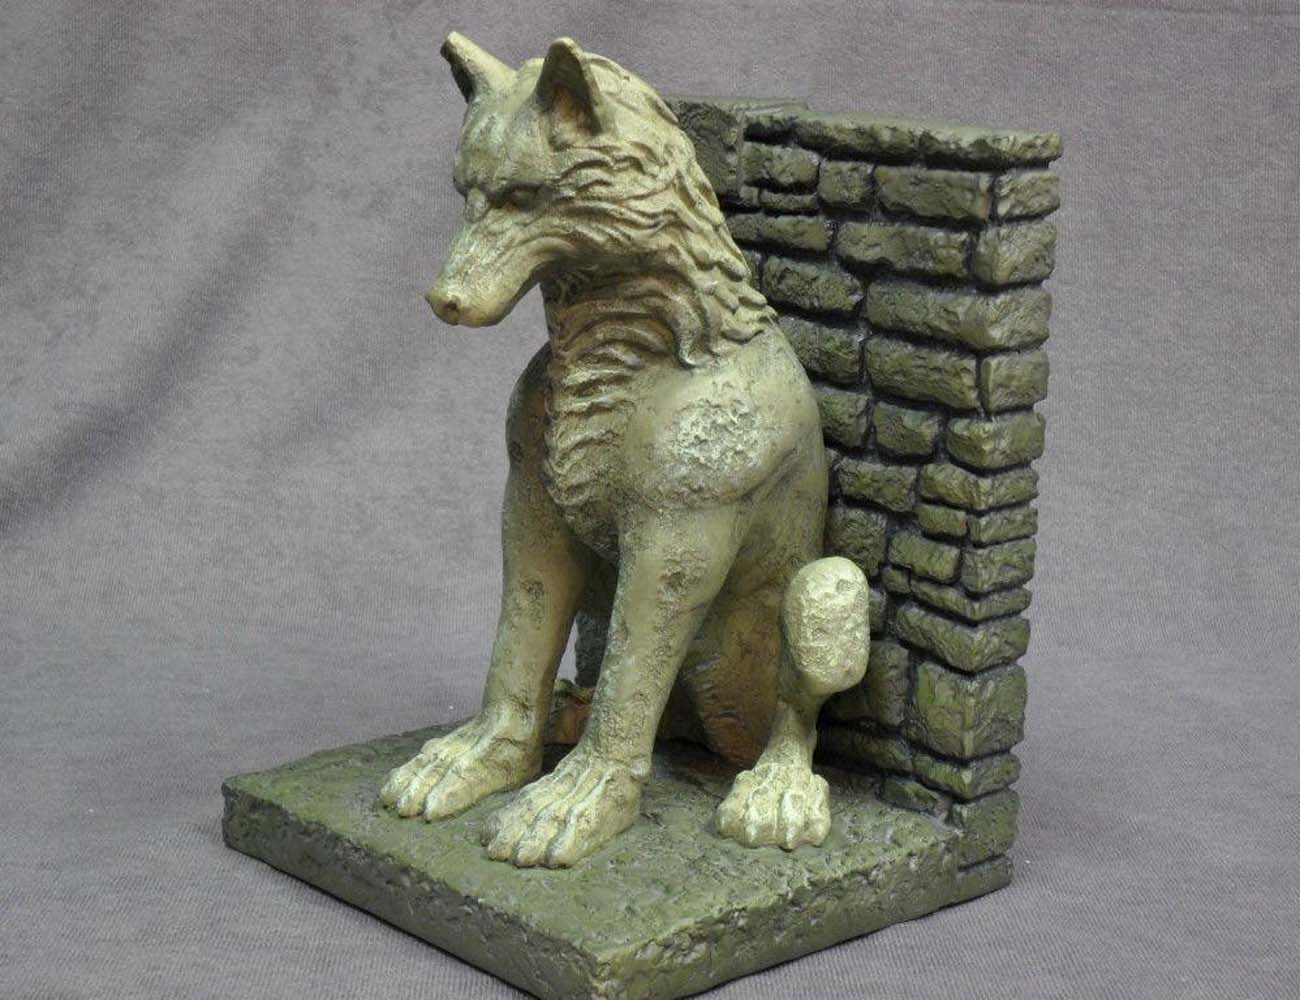 Game of Thrones Stark Direwolf Bookends loading=